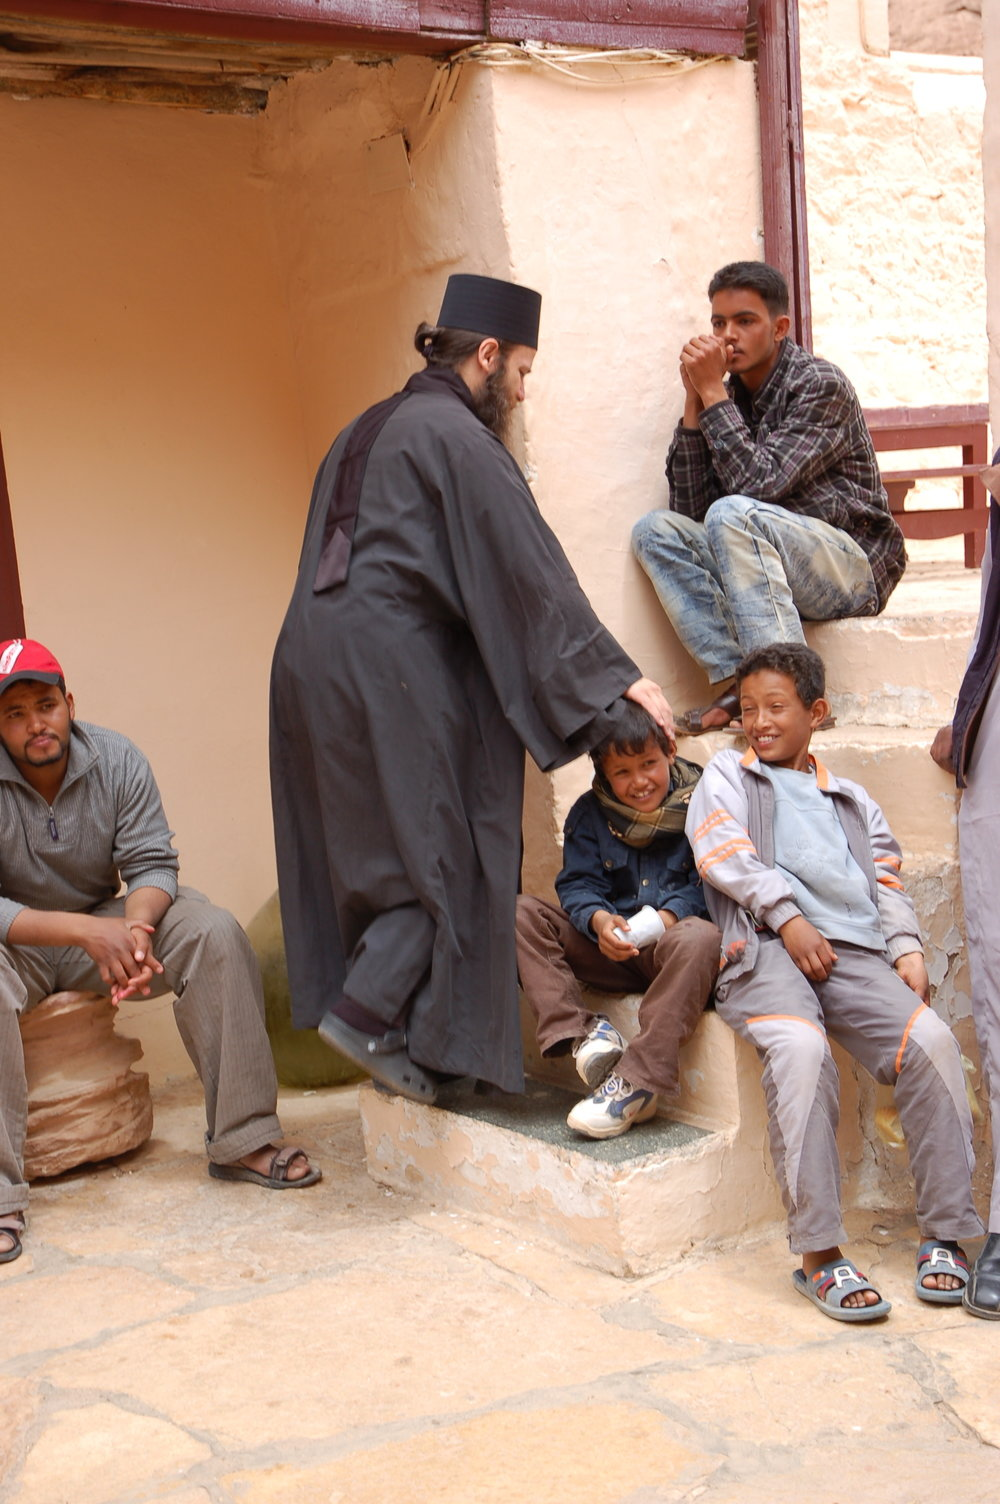 Bedouin children at the Monastery of Saint Catherine